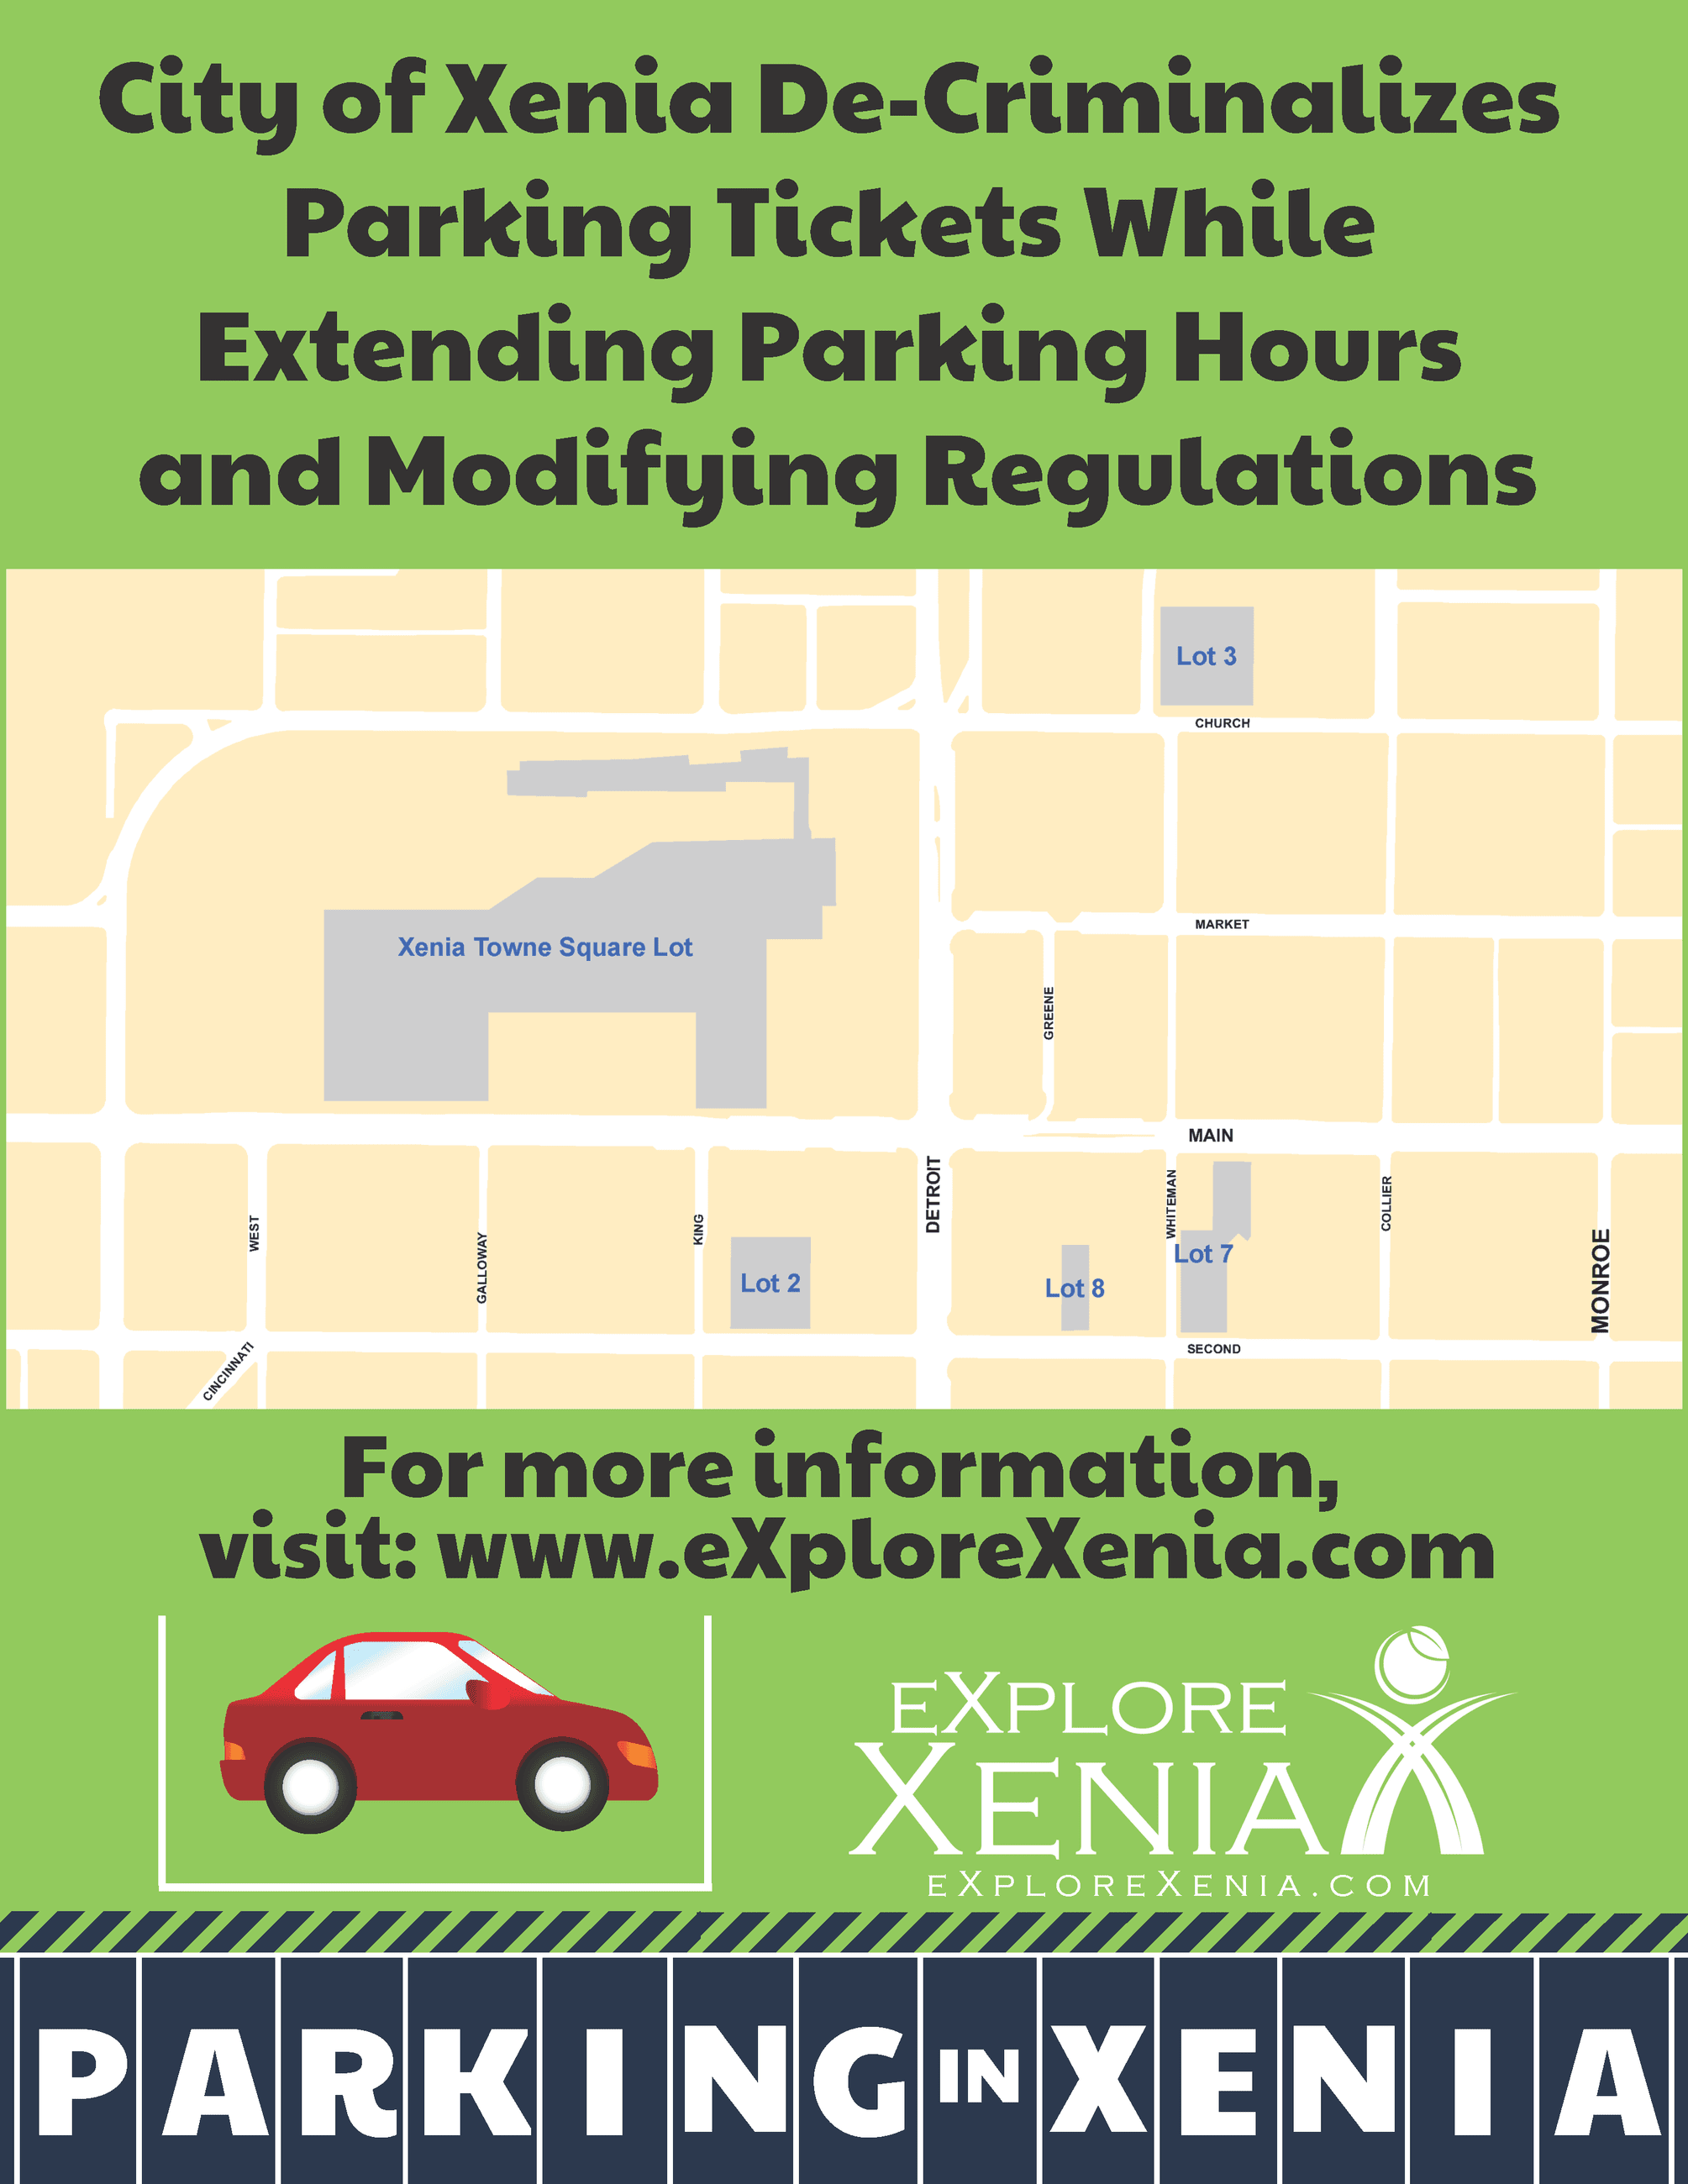 Parking in Xenia FAQ (1)